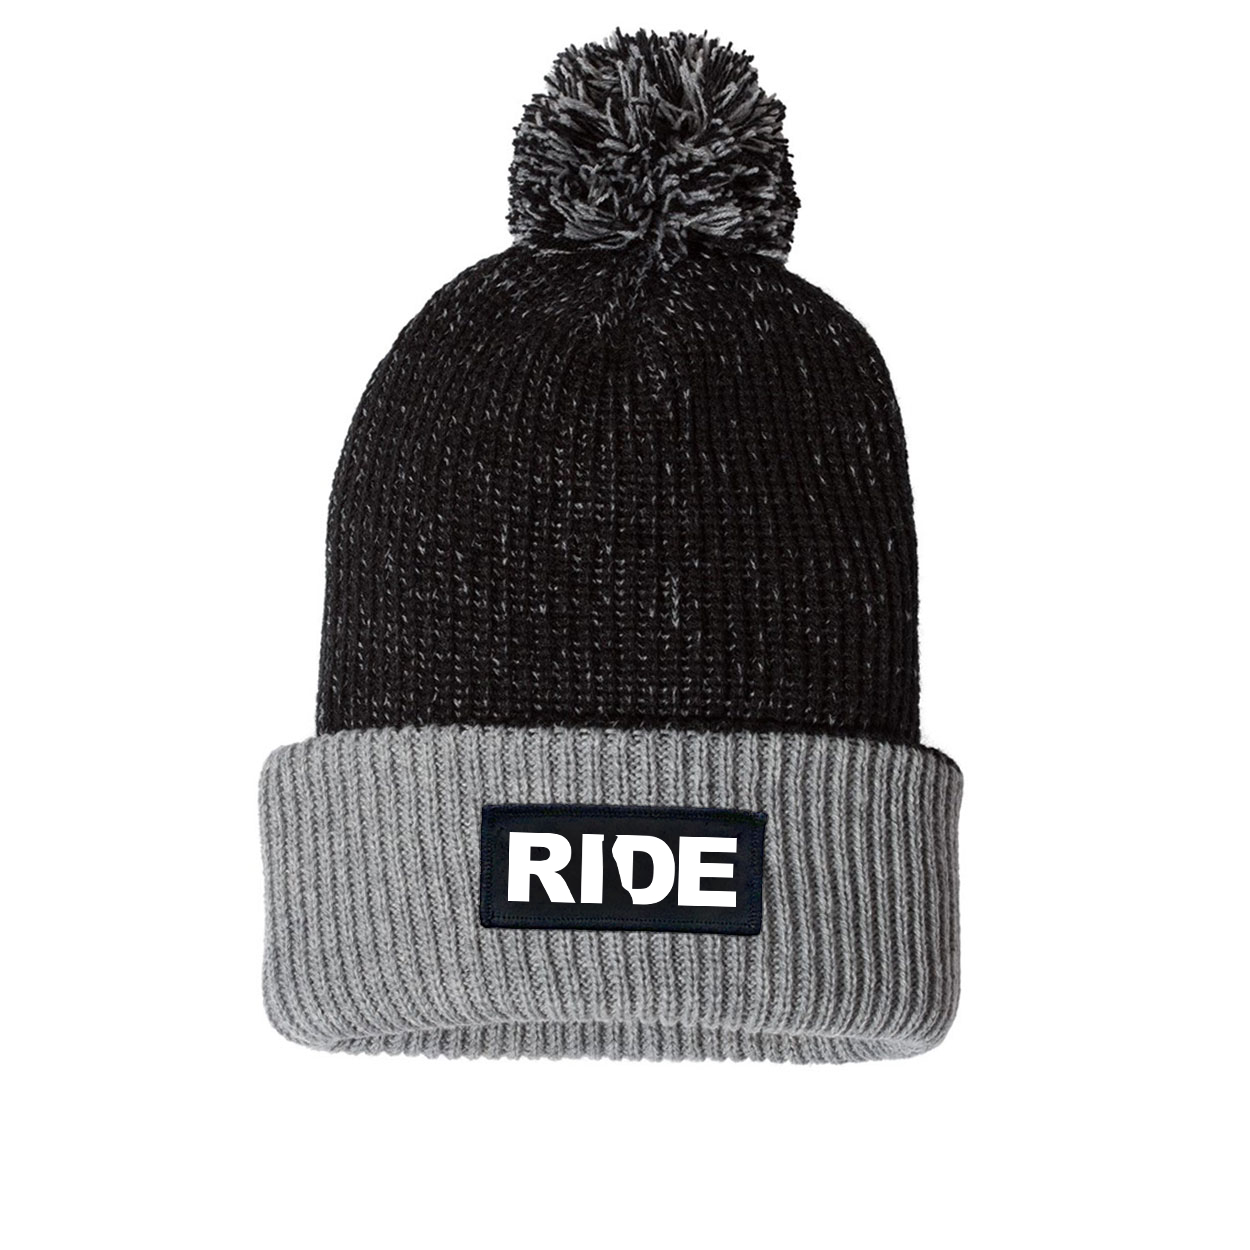 Ride Delaware Night Out Woven Patch Roll Up Pom Knit Beanie Black/Gray (White Logo)